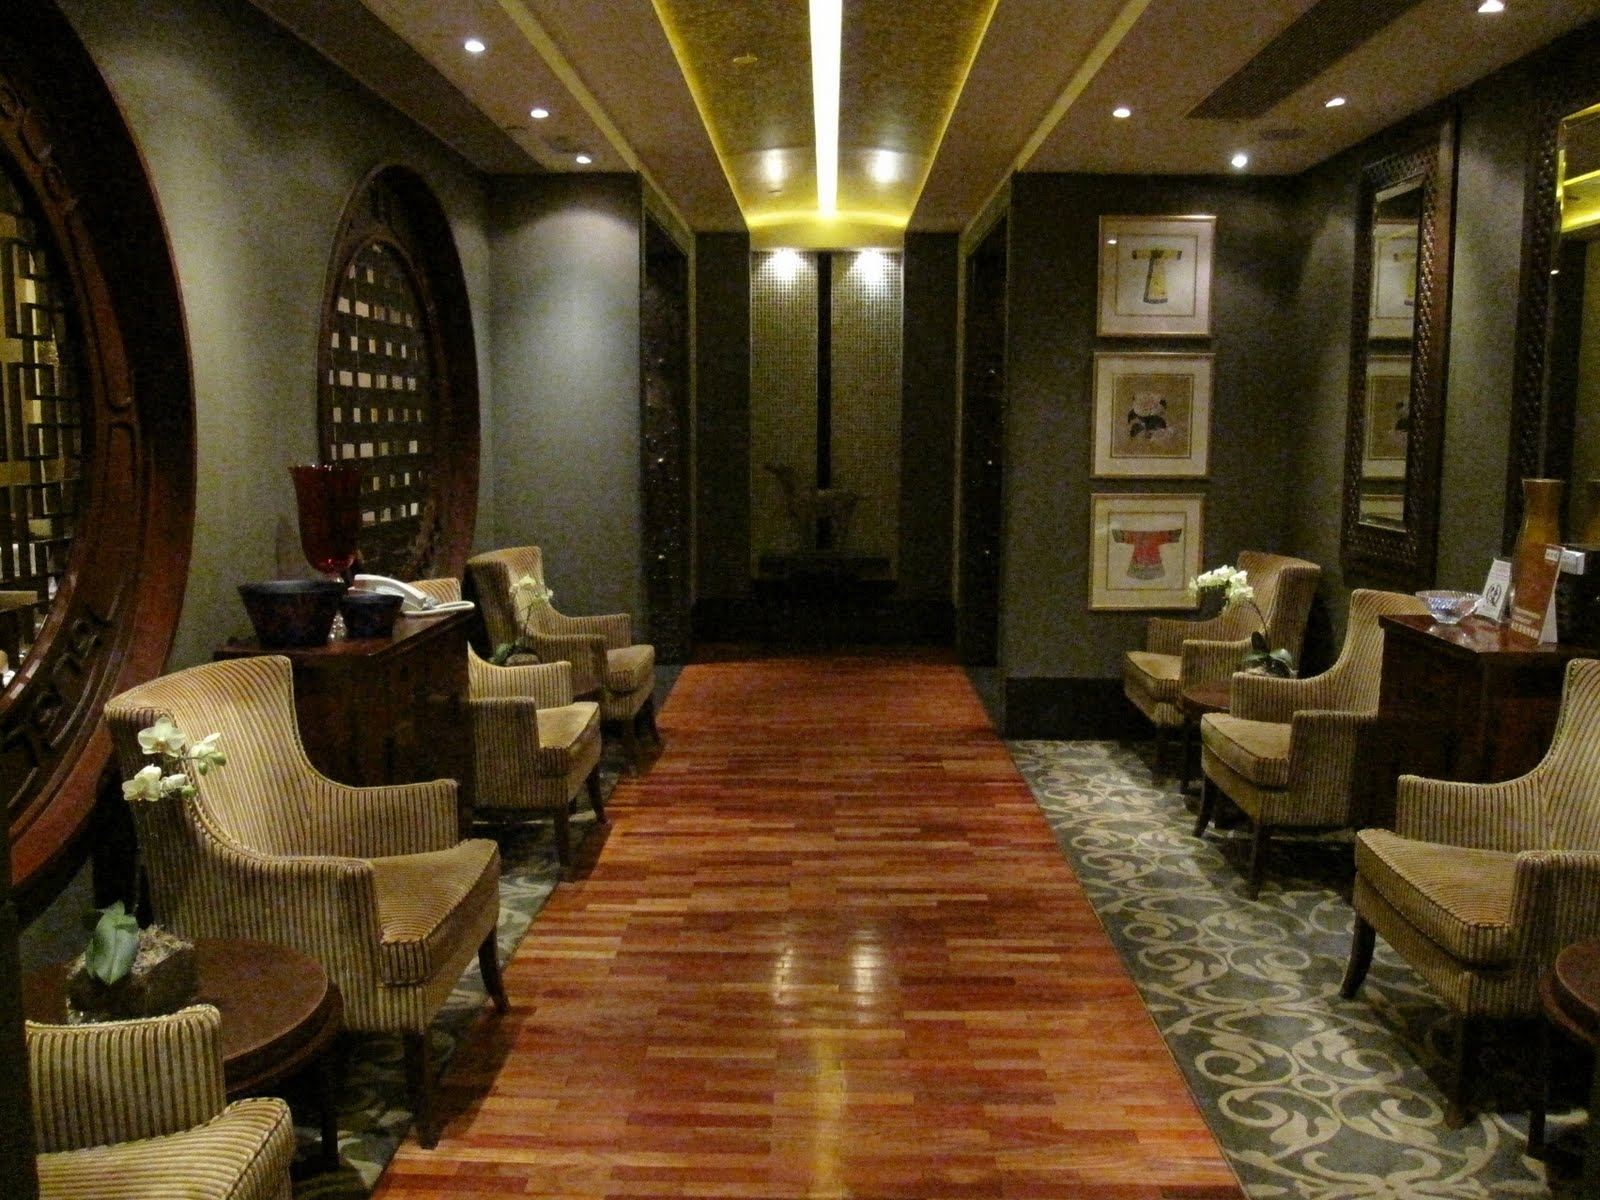 Fashion Pulis: My Favorite Restaurant In Hk: Peking Garden intended for Peking Garden Restaurant (Alexandra House) Central